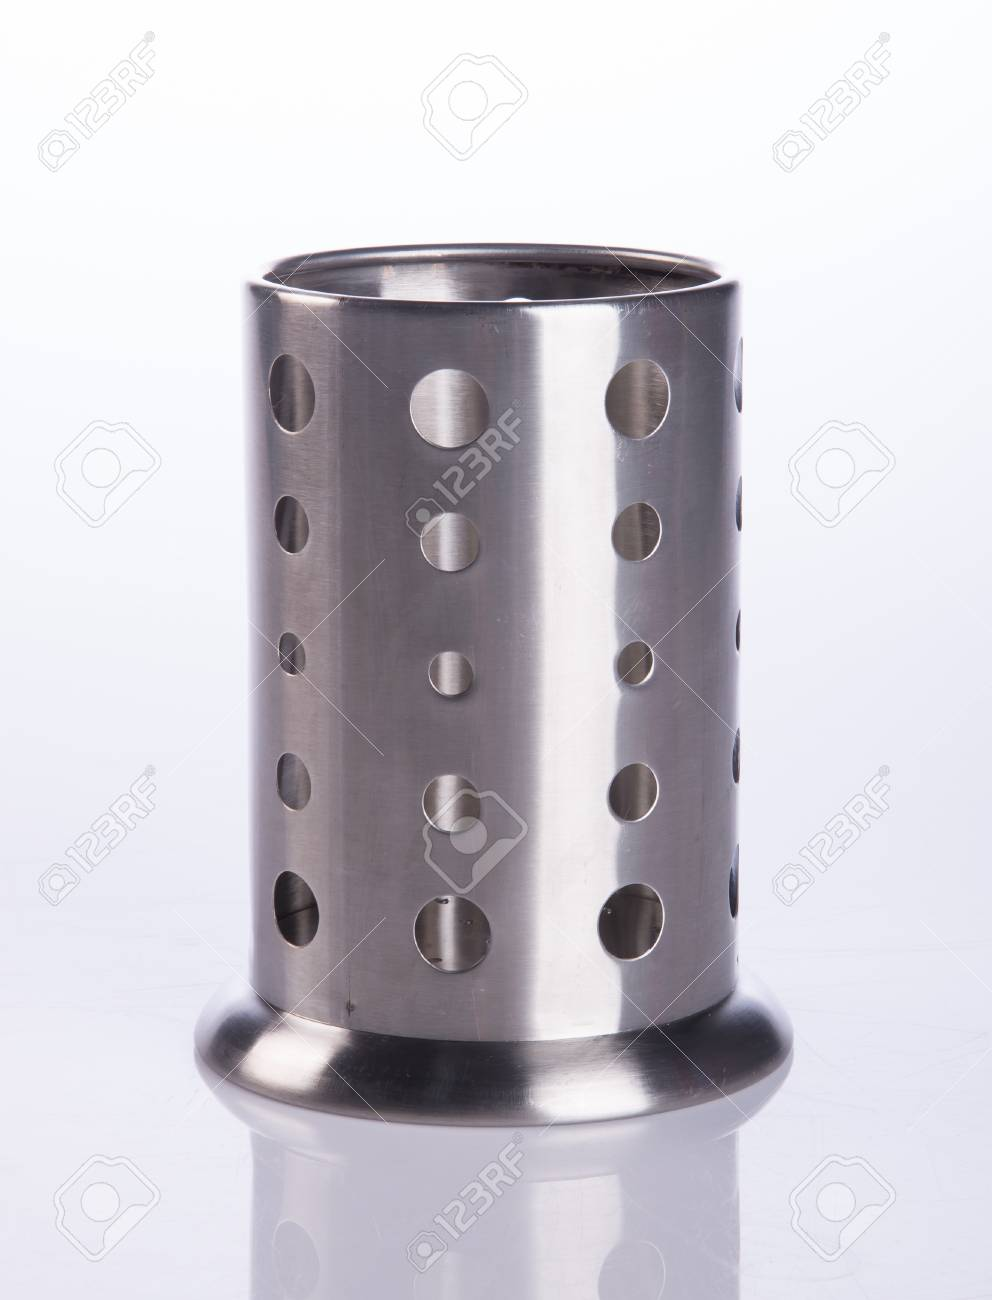 kitchen utensils holder remodel my on the background stock photo picture and 79708005